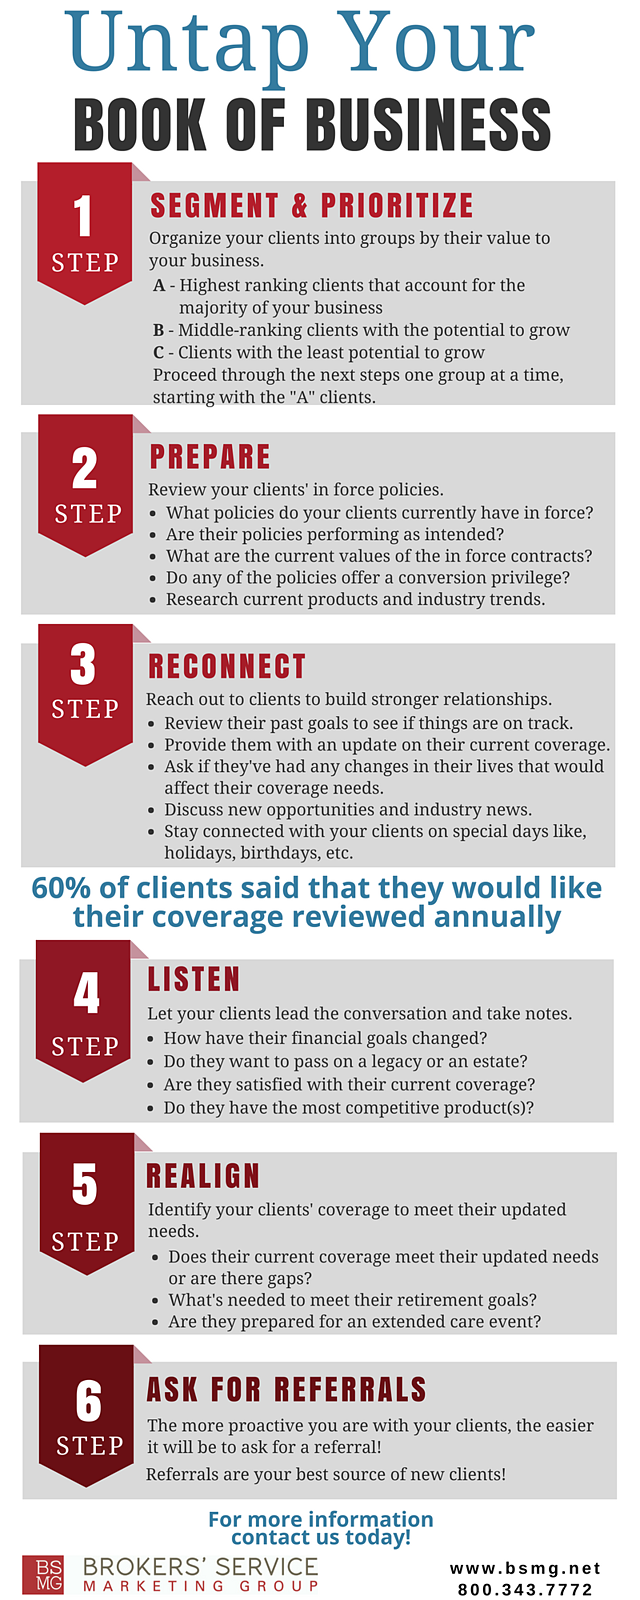 Untap Your Book of Business Infographic-1.png